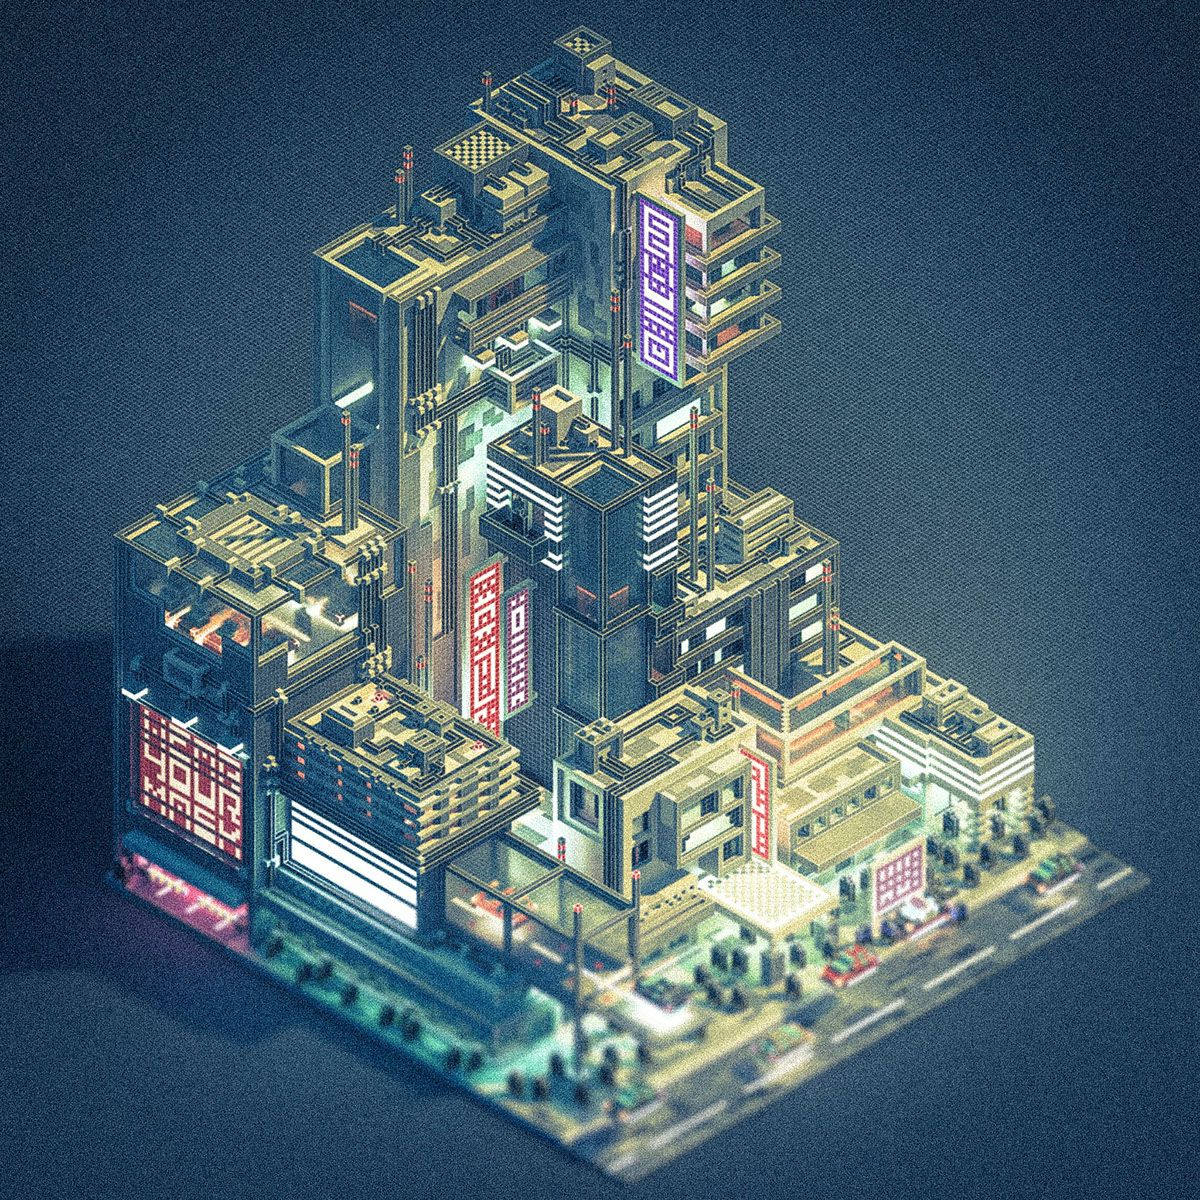 Created A Little Futuristic City In Voxels With Magica Voxel And Animated It In Unity Sci Fi City Futuristic City Cyberpunk City